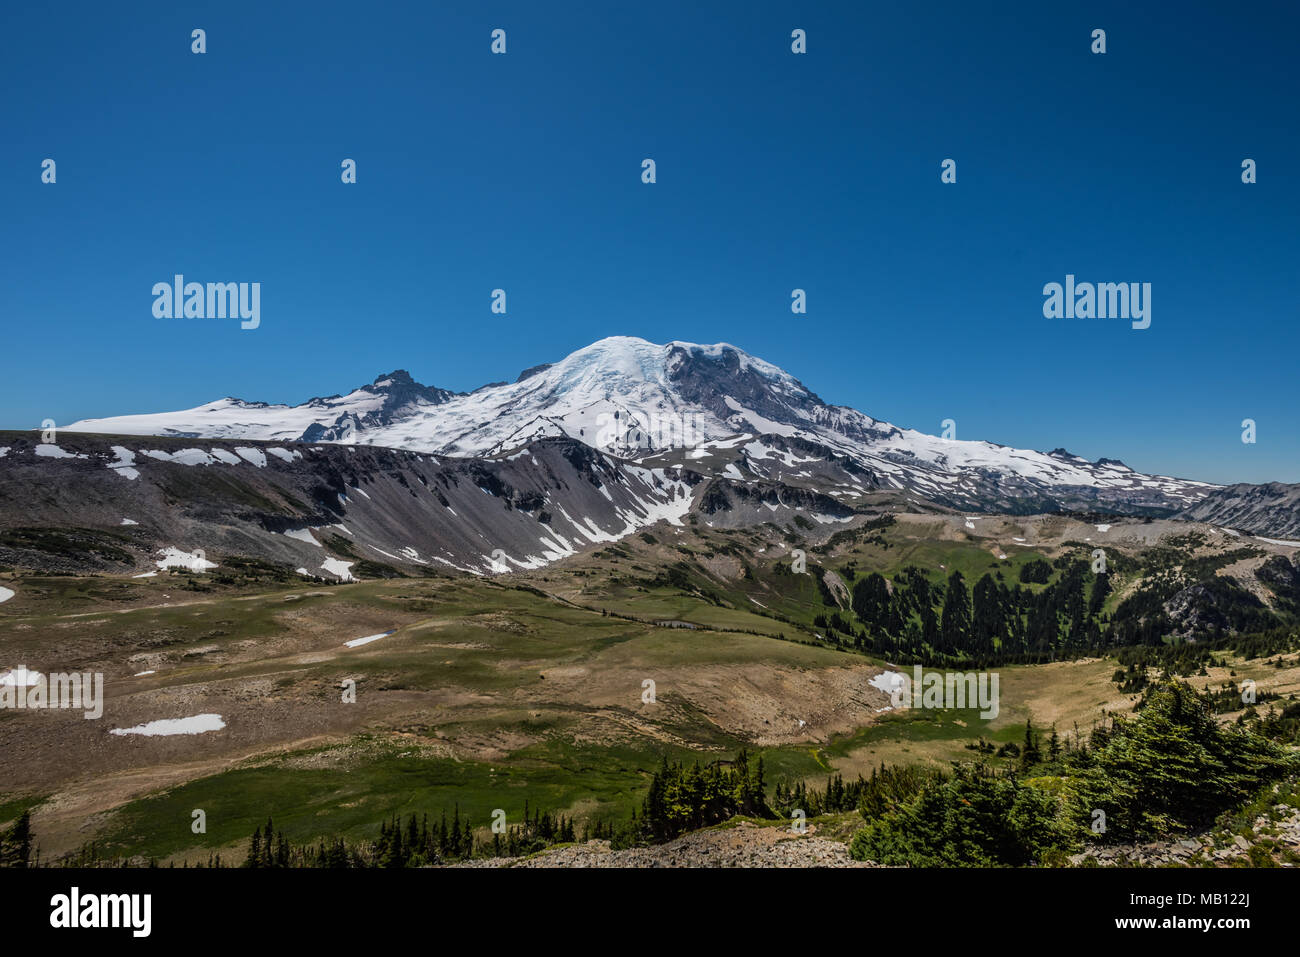 Snow Covered Mount Rainier and Grassy Meadow Below in summer - Stock Image